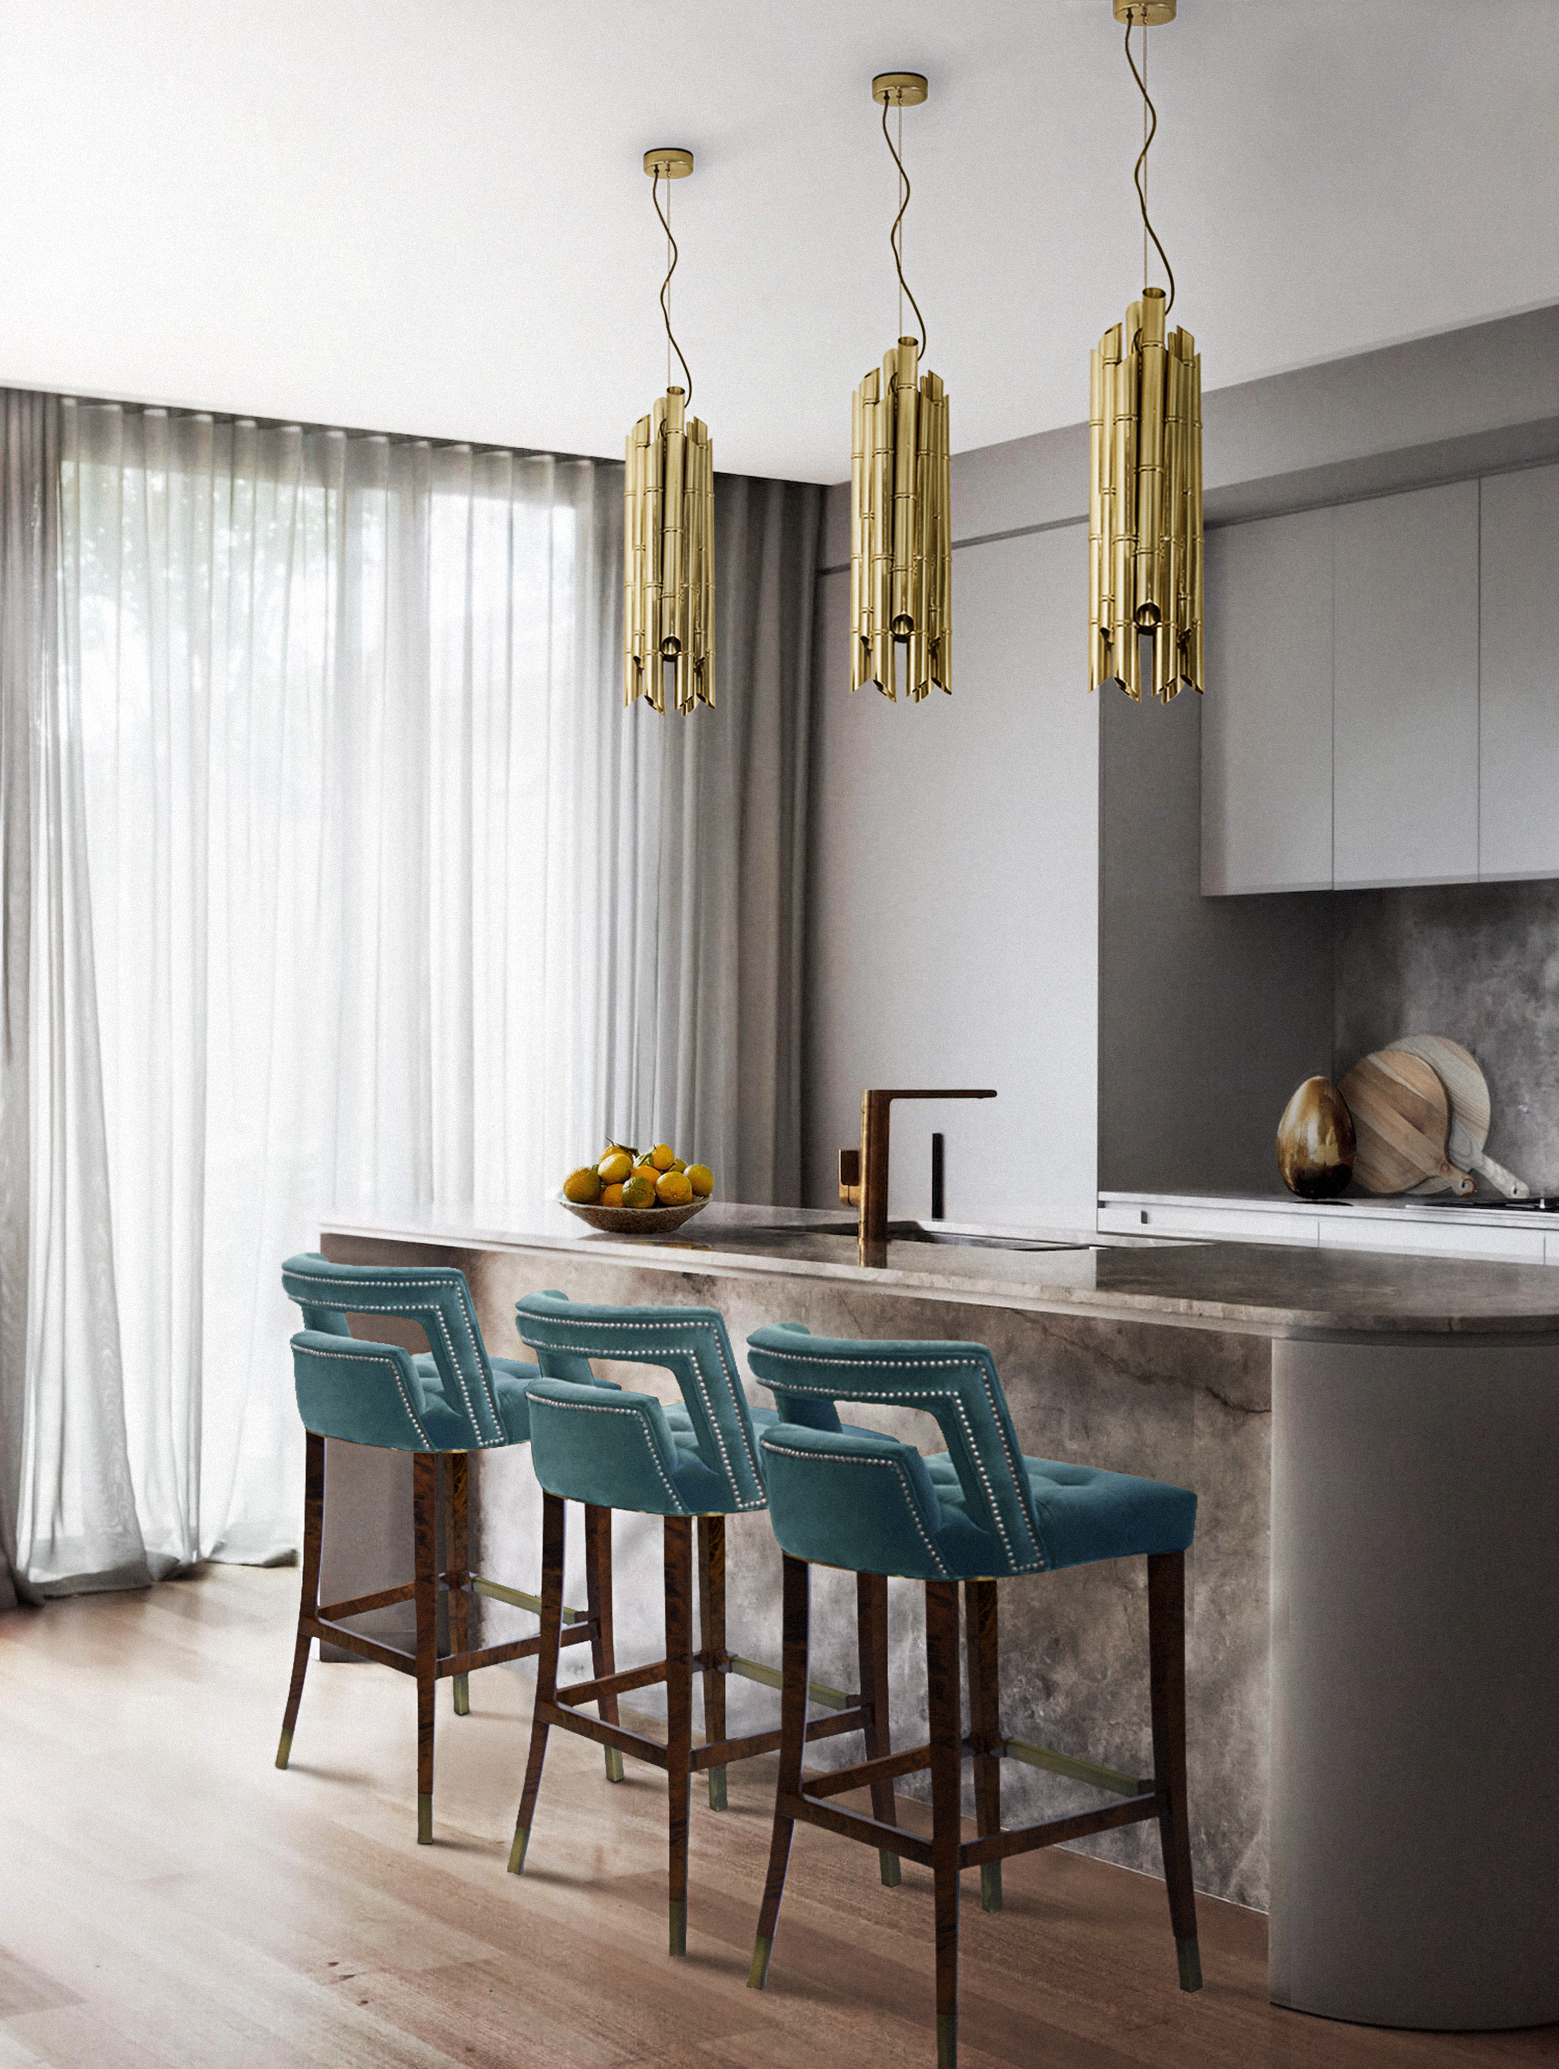 Blue Chairs: Modern and Comfortable Design For Every Room blue chairs Blue Chairs: Modern and Comfortable Design For Every Room Naj barchair Saki pendant